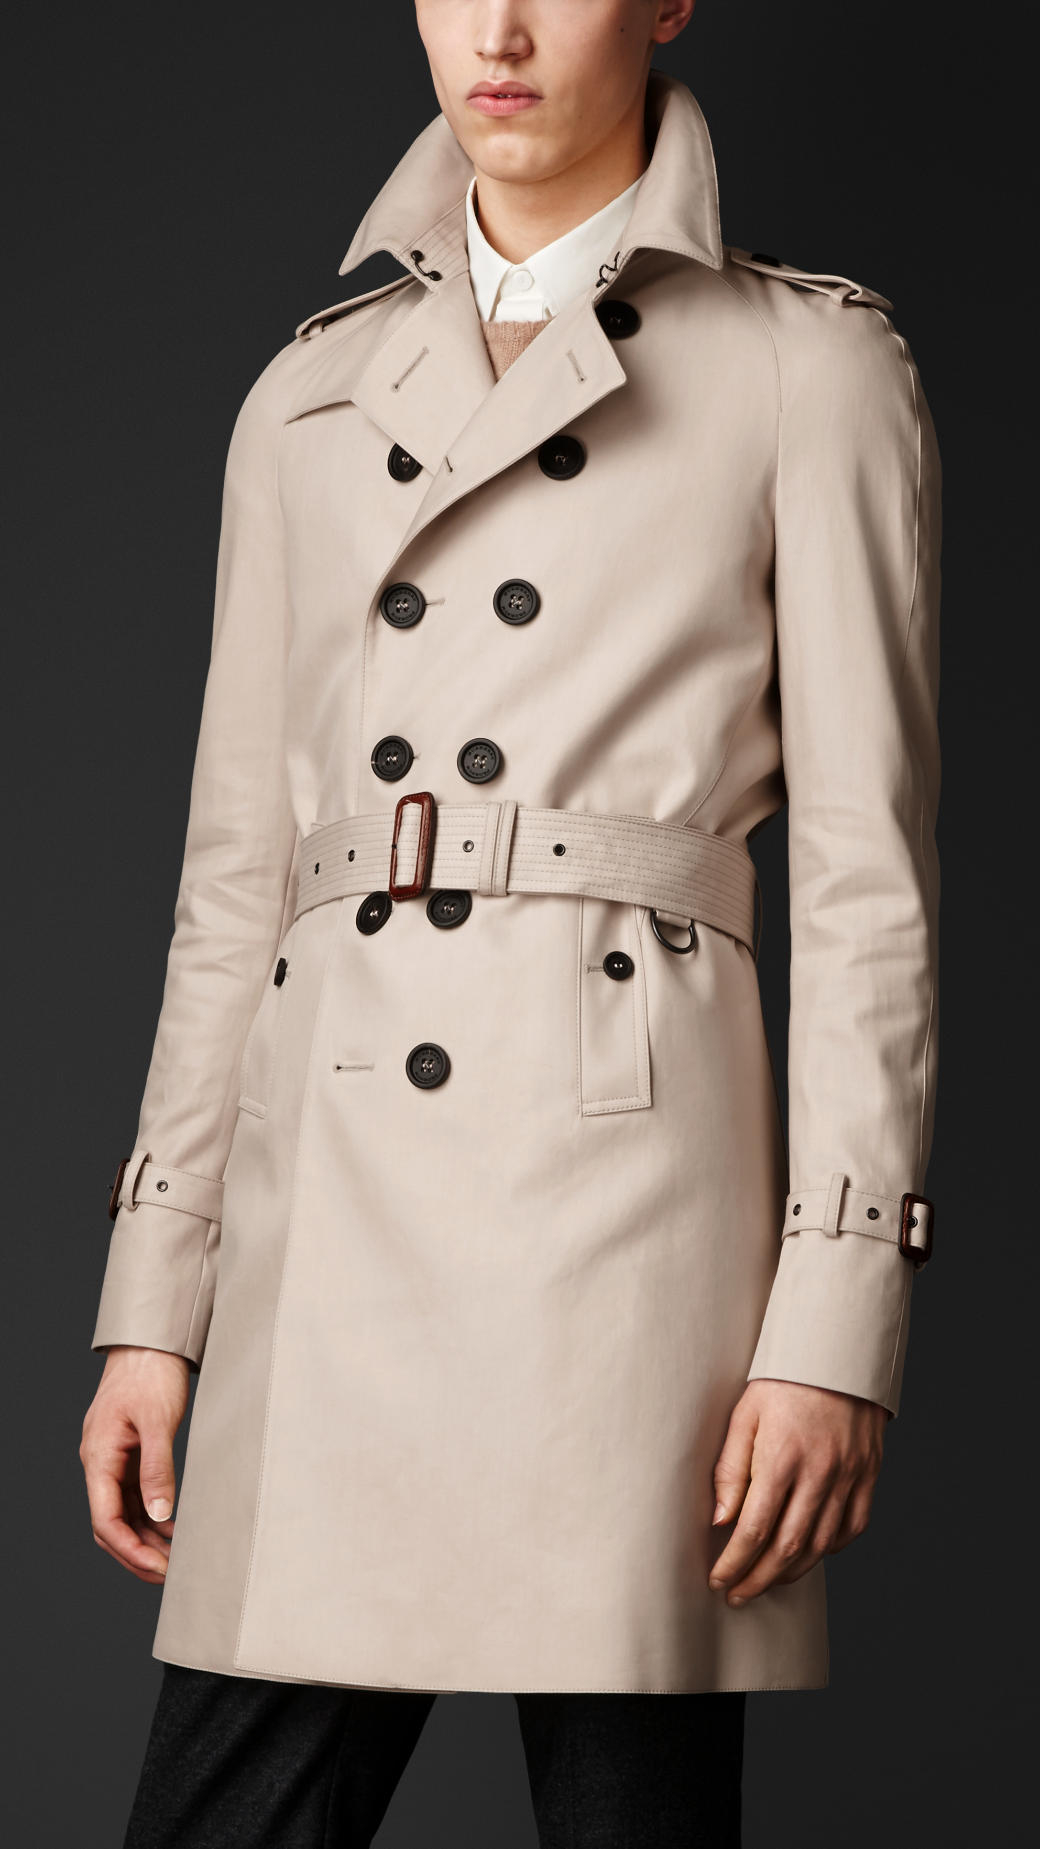 31a5c92c Burberry Burberry Gabardine in Men for Coat Cotton Trench Natural Lyst  rqUCnpr